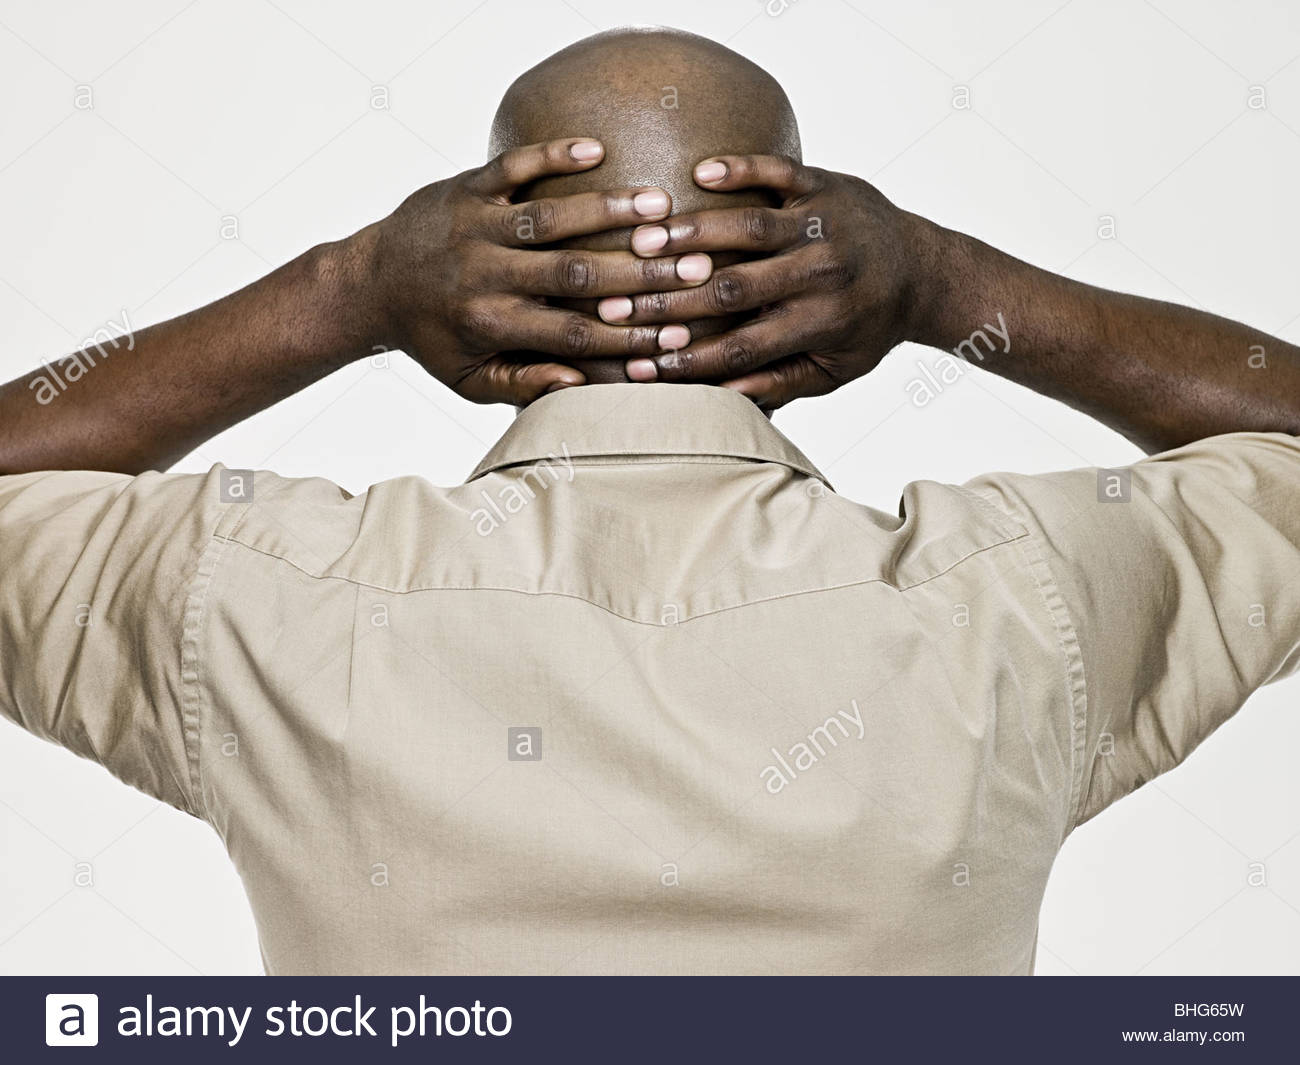 Rear view of a bald man - Stock Image